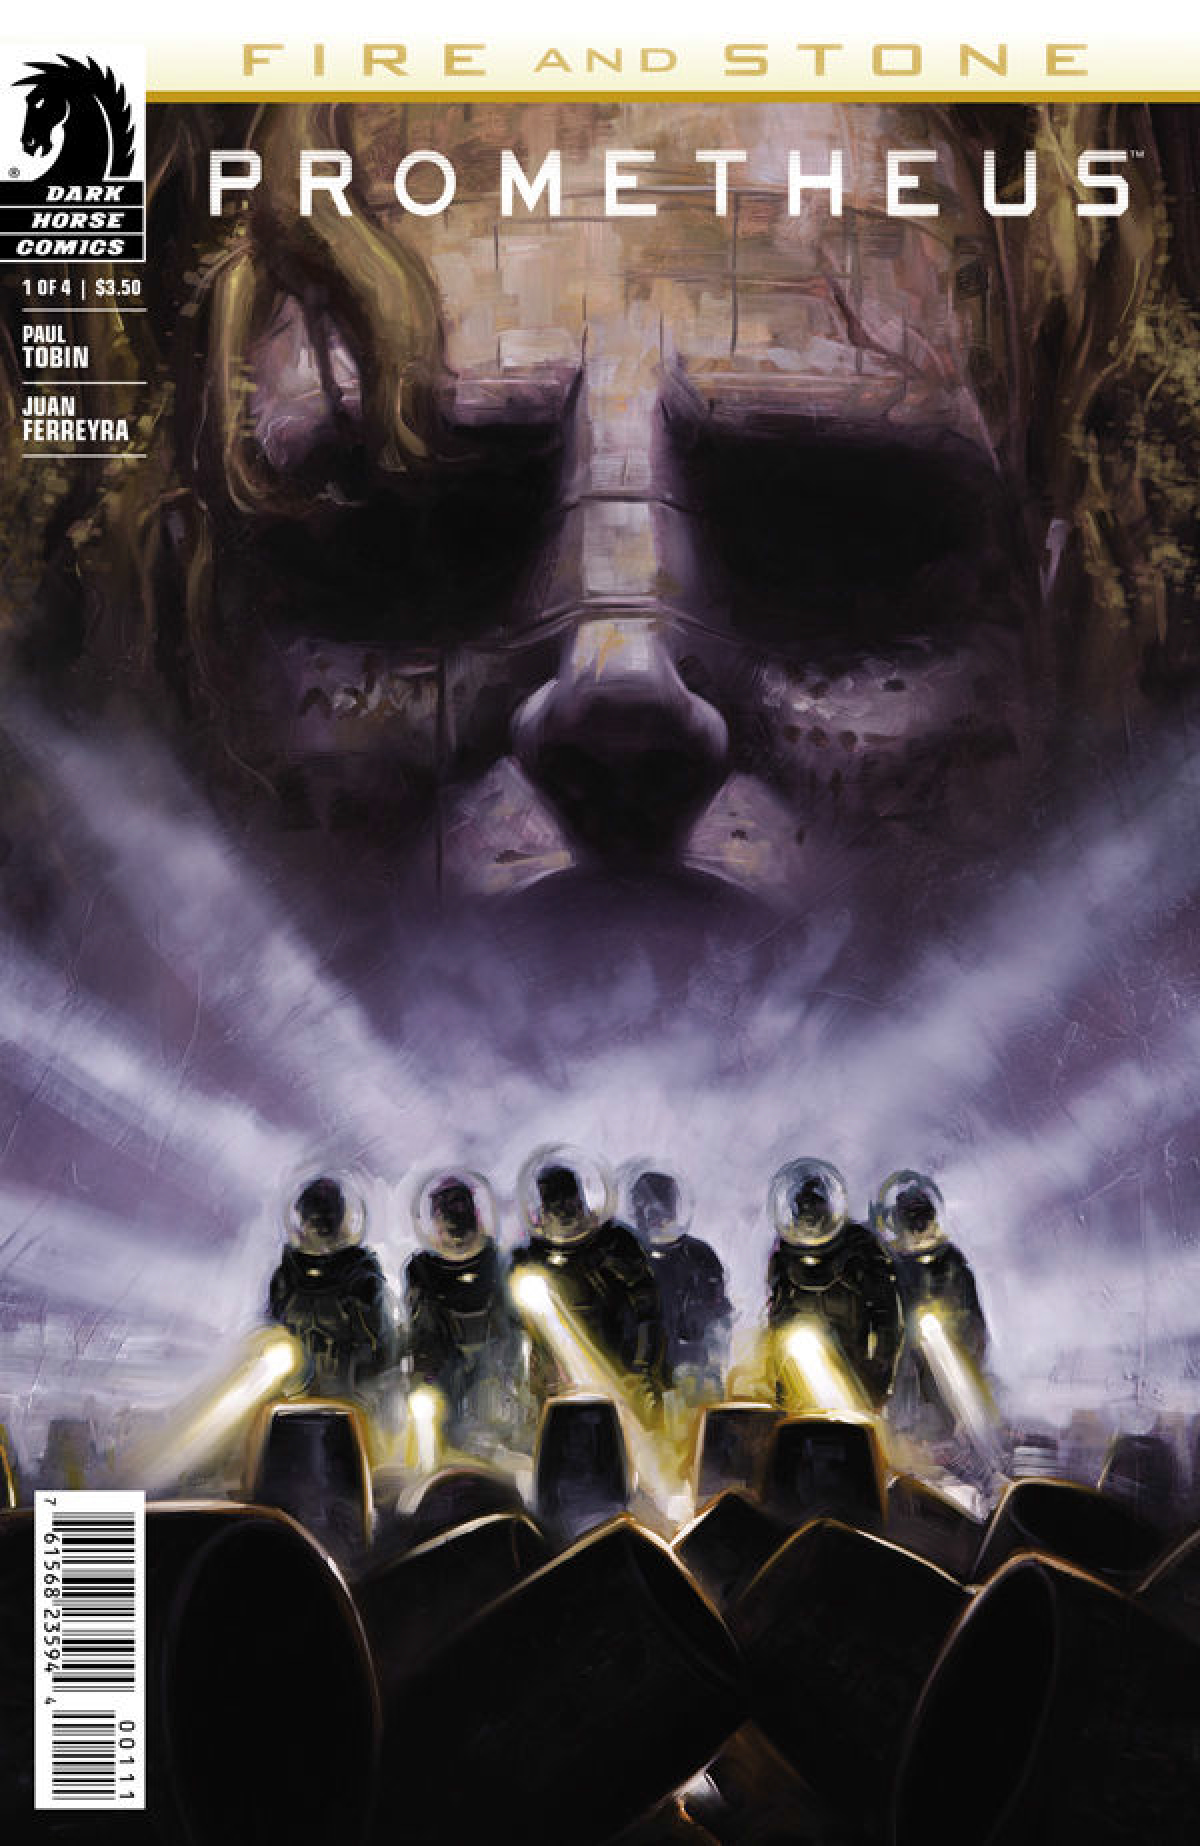 (USE AUG148044) PROMETHEUS FIRE AND STONE #1